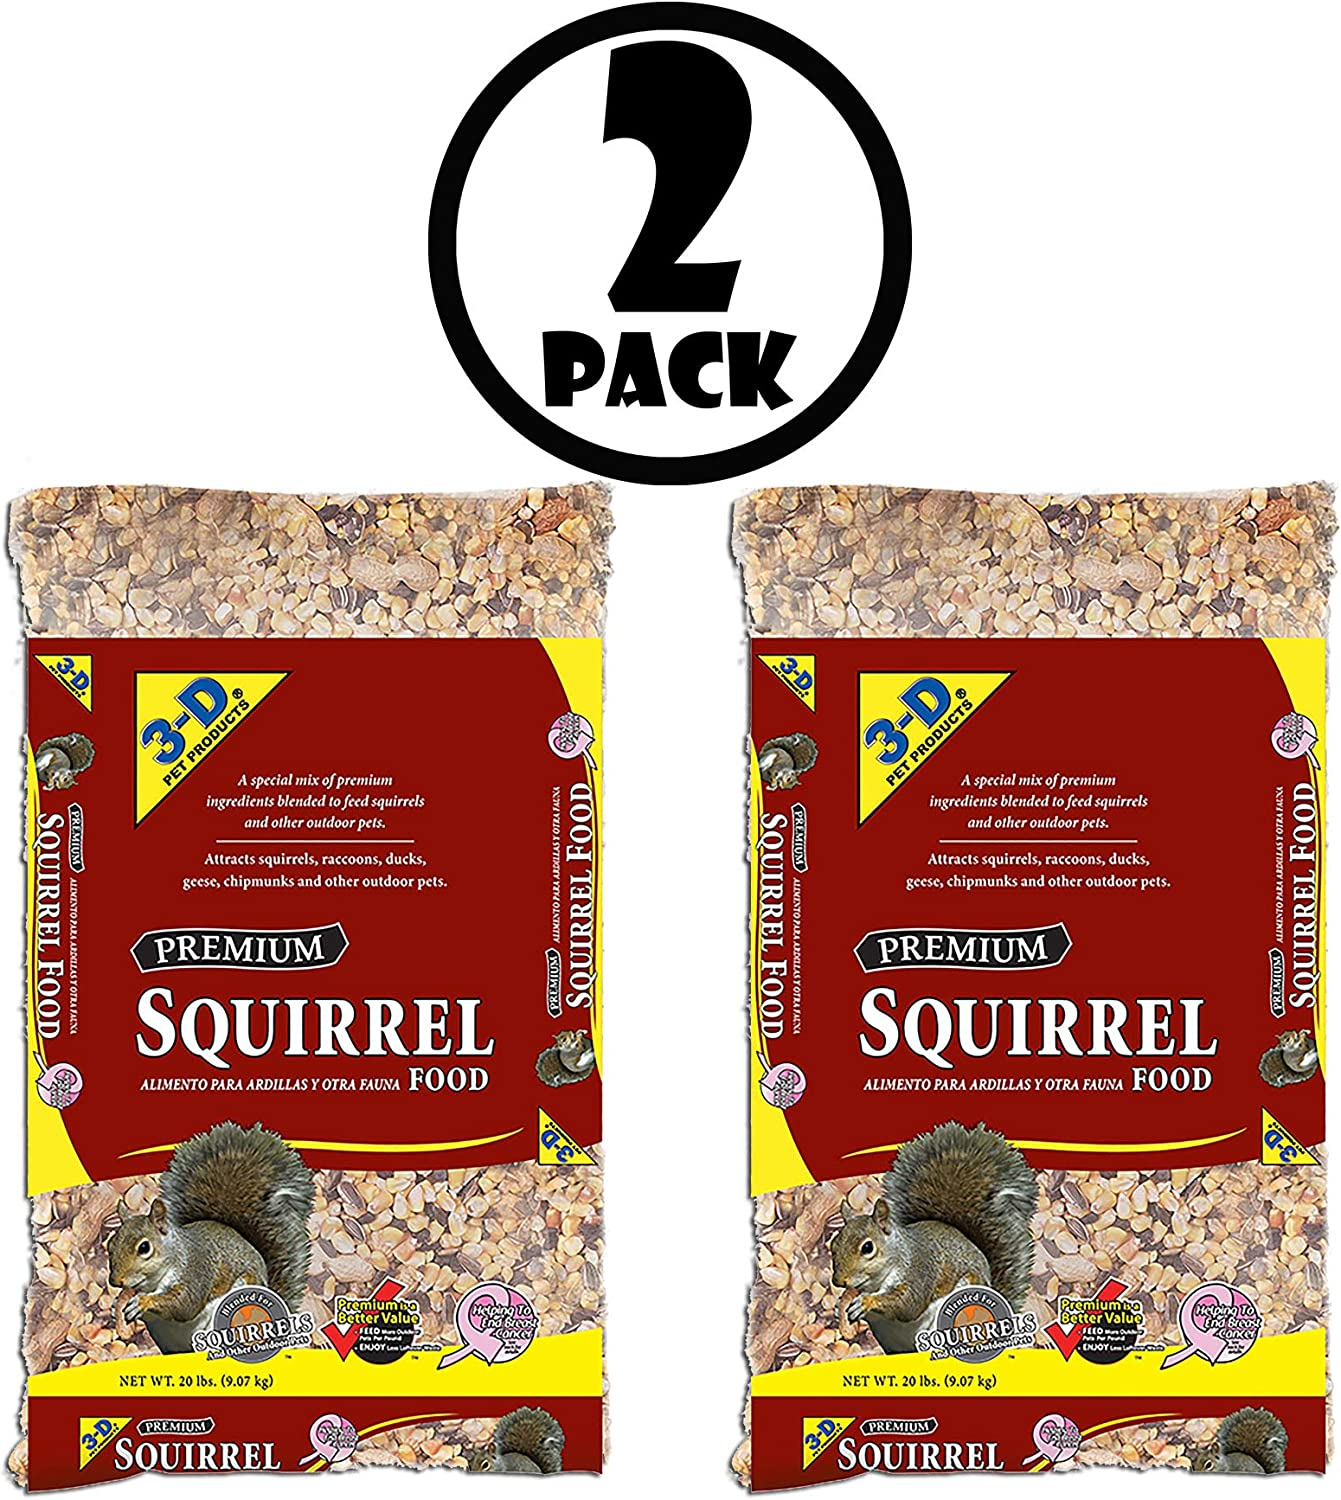 3-D Pet Products Premium Dry Squirrel Food, 20 lbs, 2 Pack